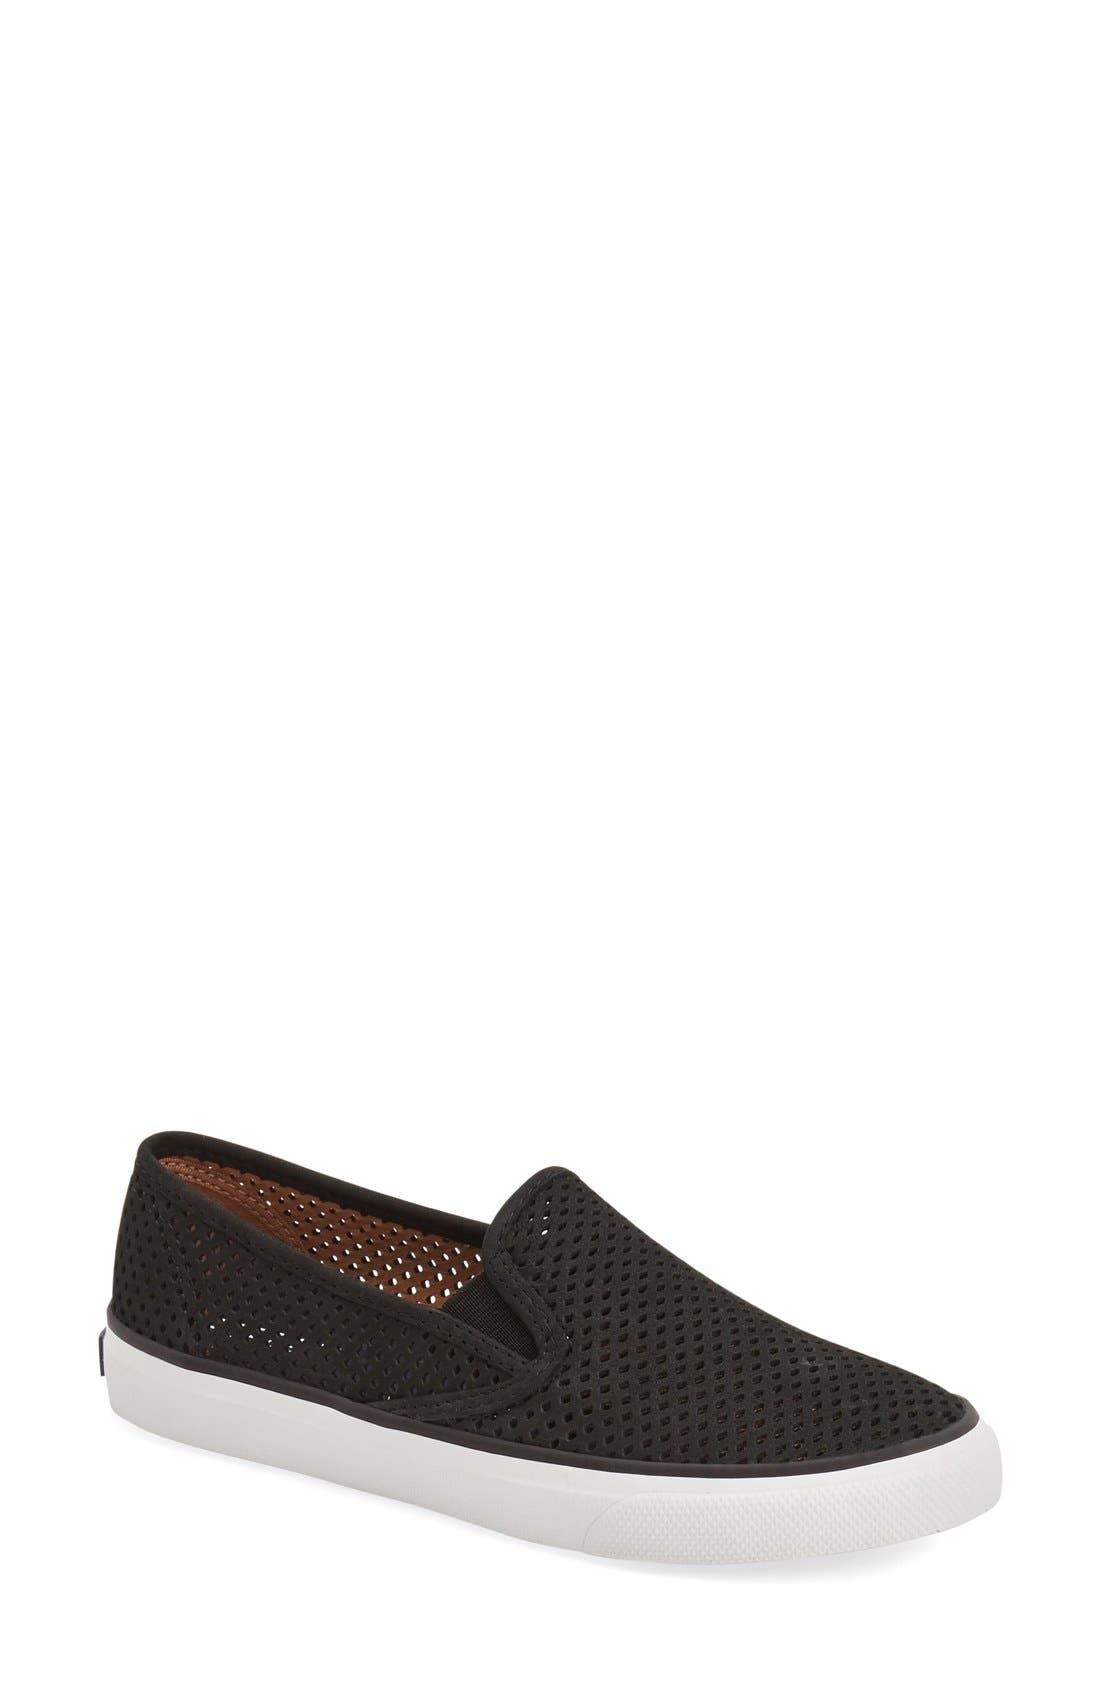 'Seaside' Perforated Slip-On Sneaker,                             Main thumbnail 2, color,